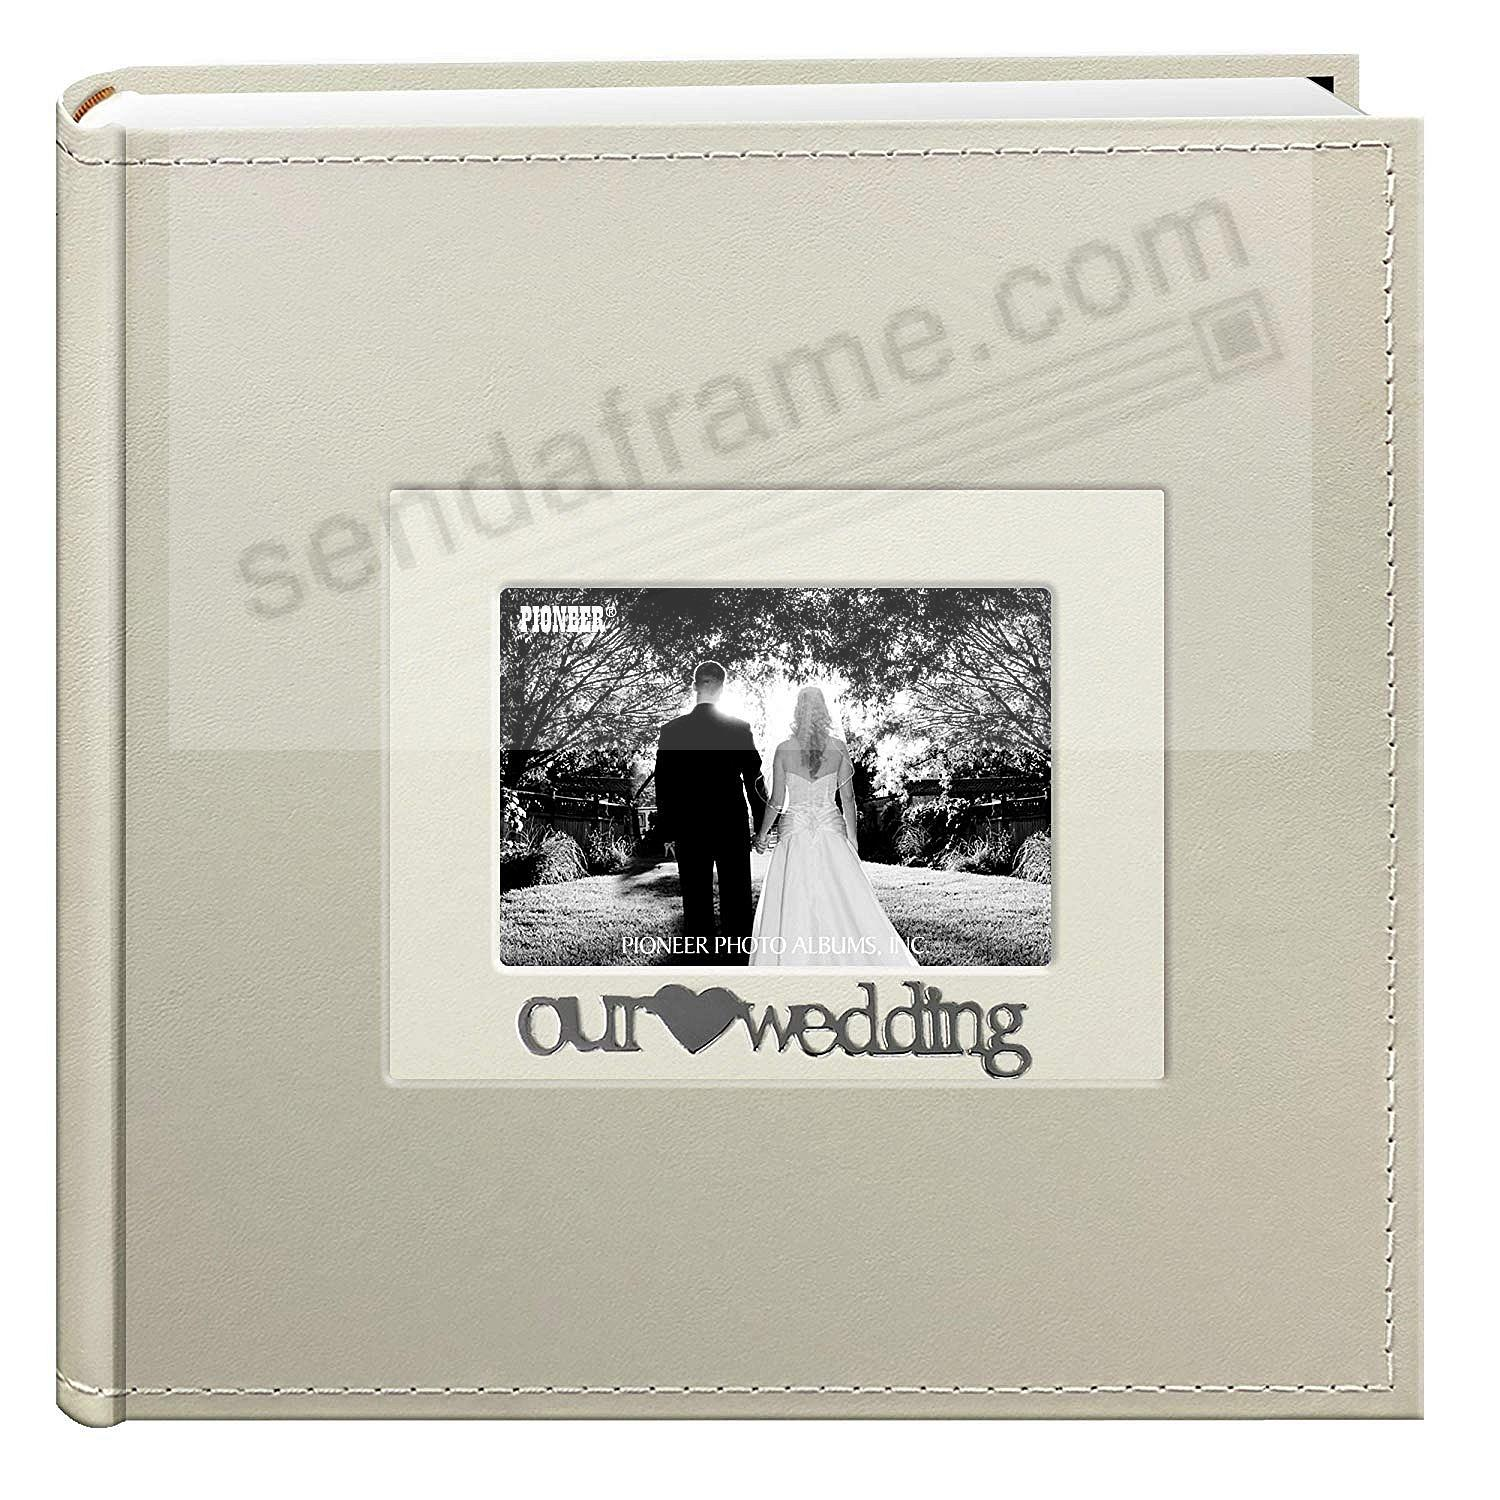 OUR {HEART} WEDDING Applique White album by Pioneer® holds 200 4x6 photos